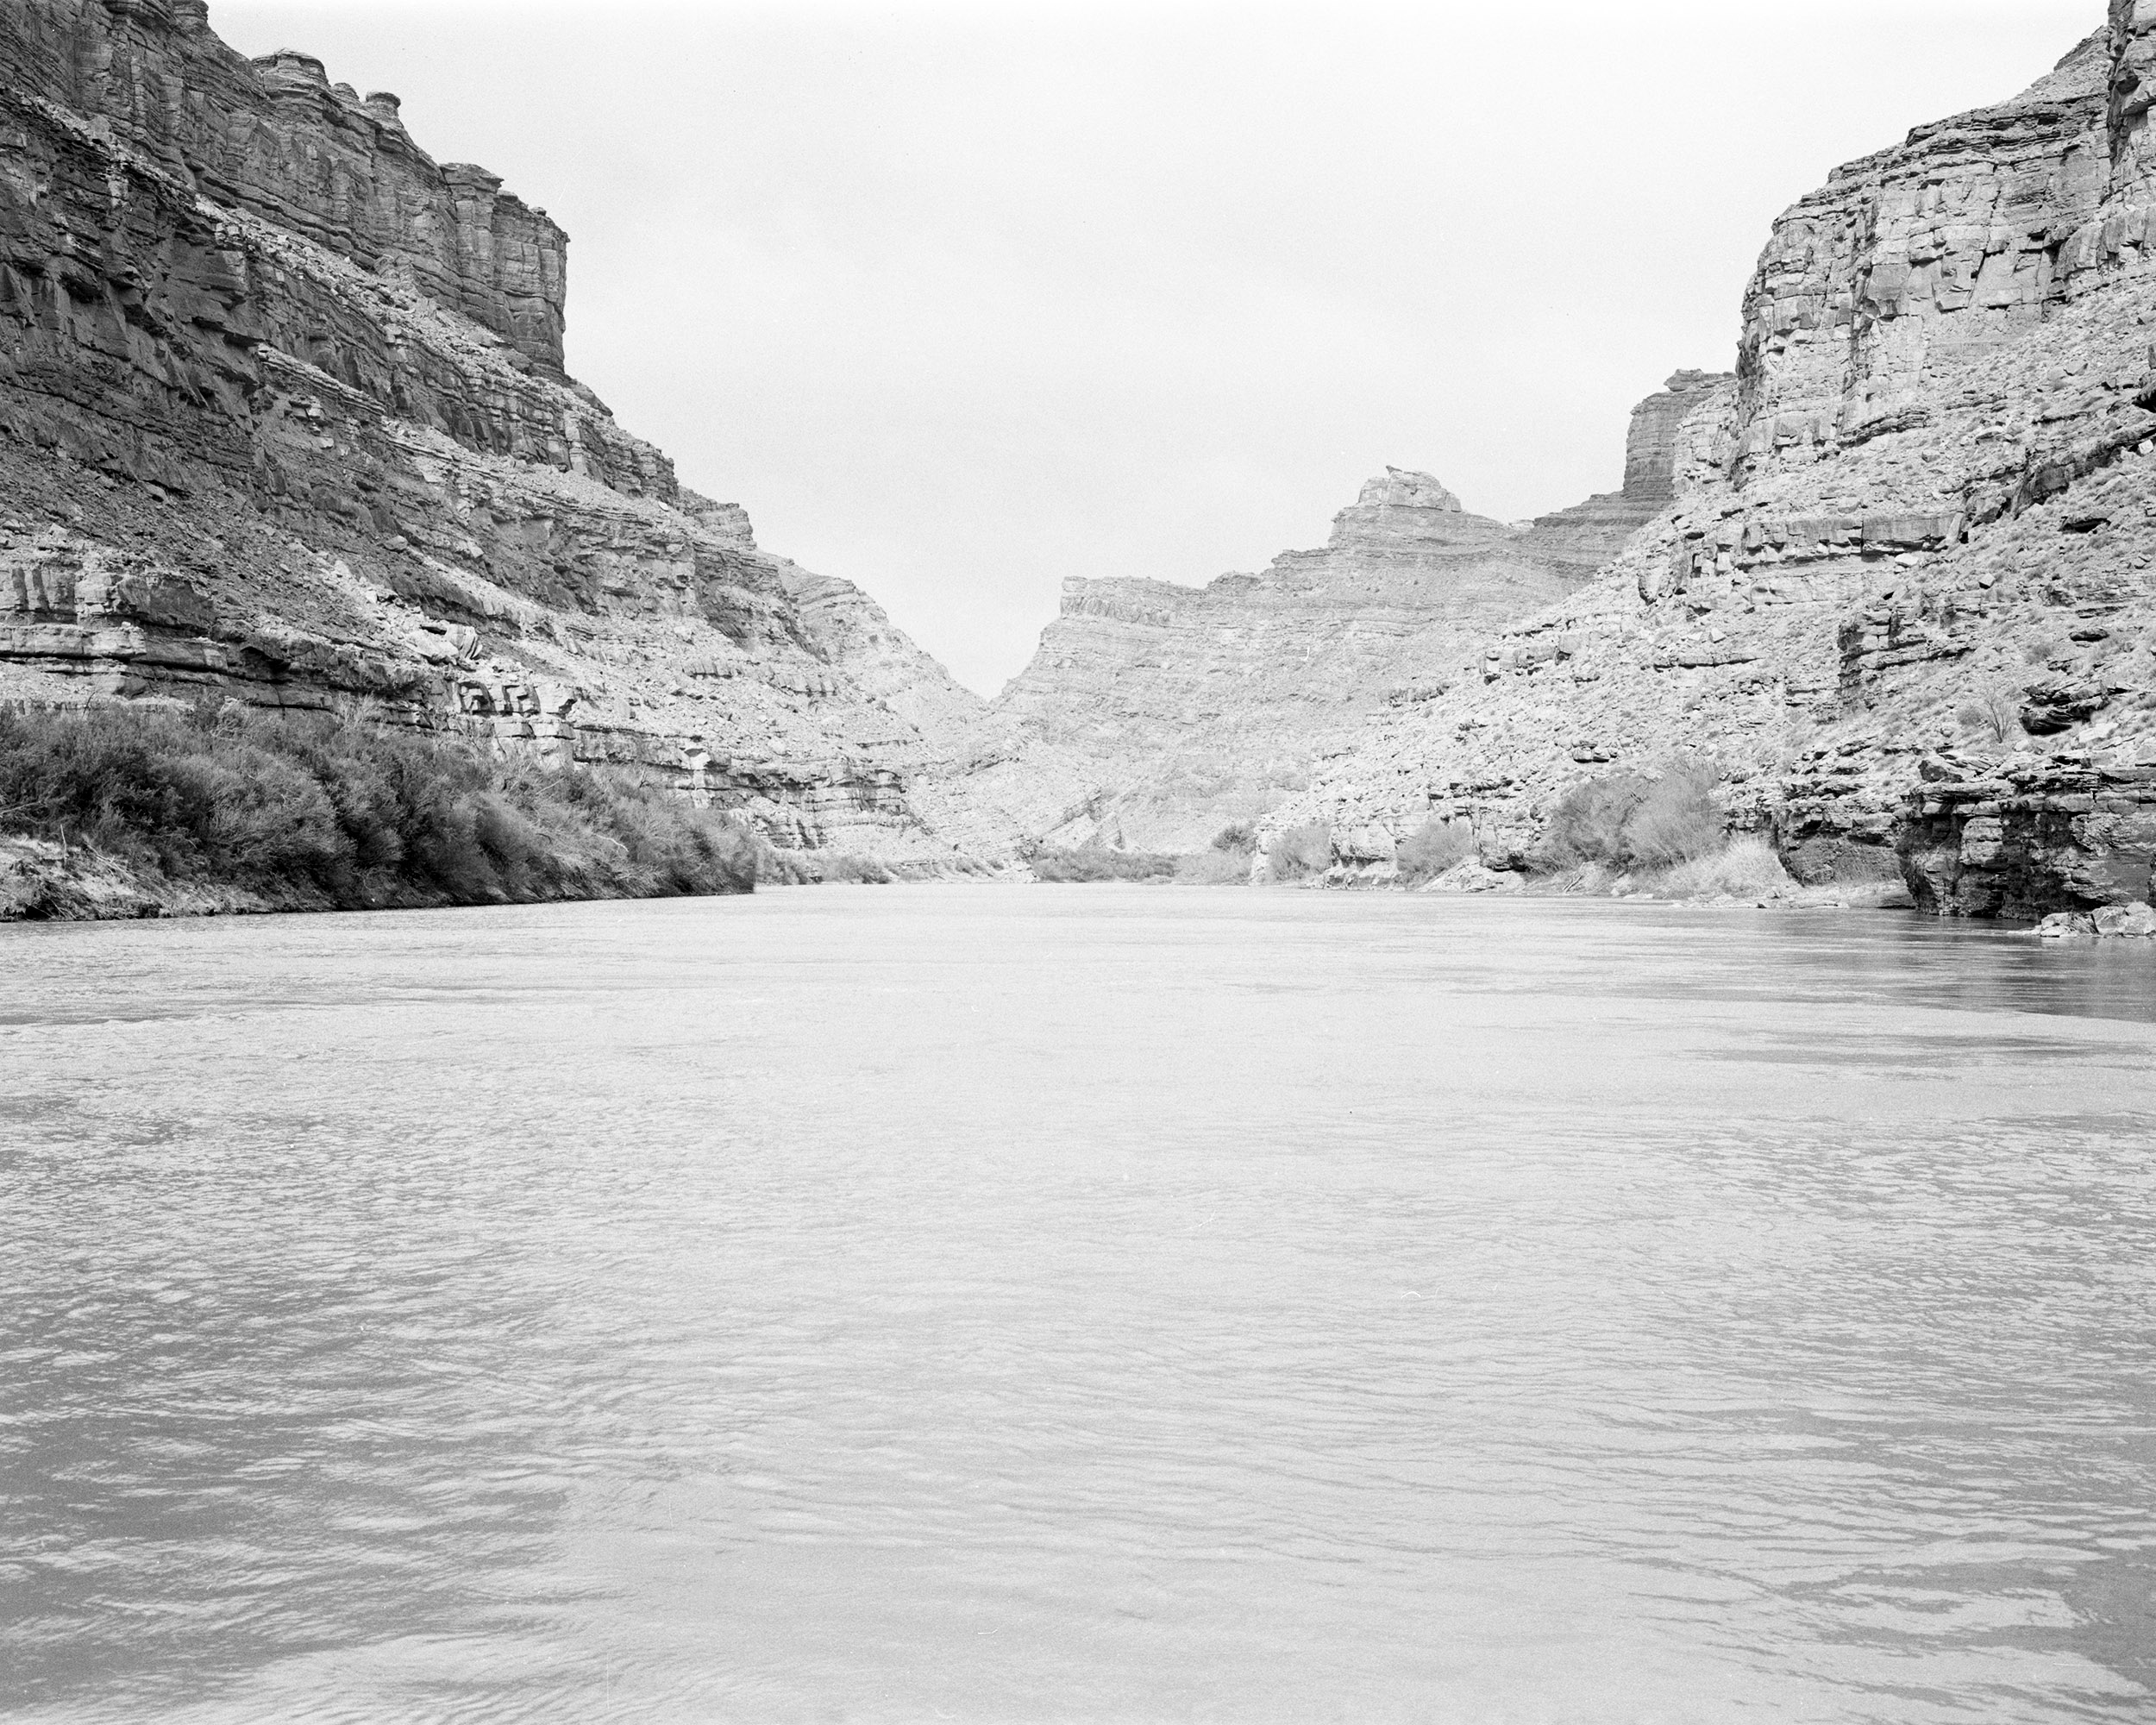 canyon river002.jpg